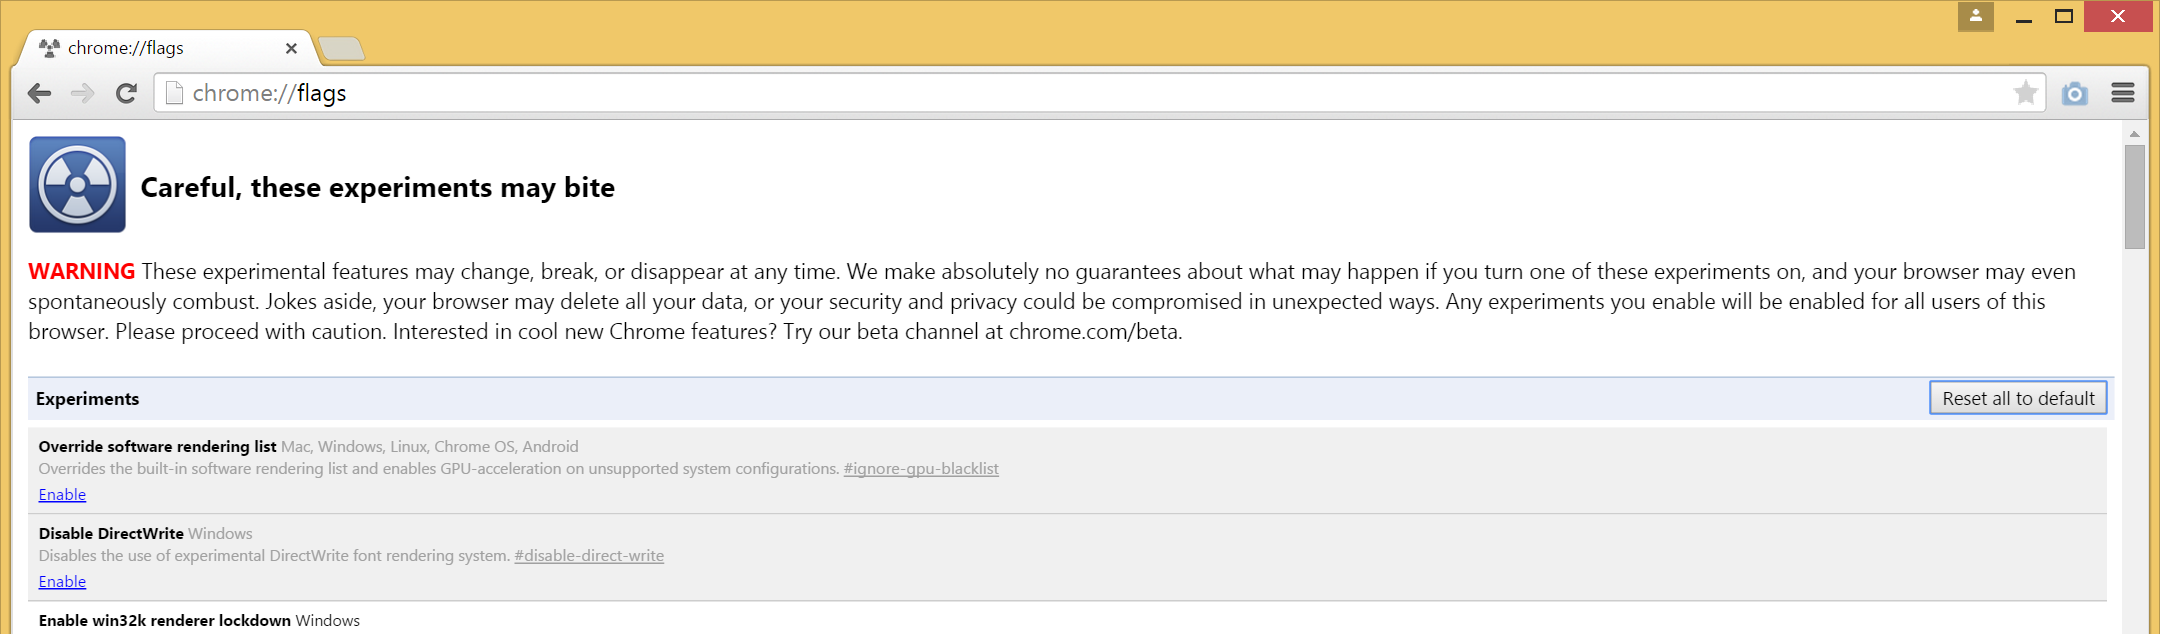 Enable support for Silverlight in new versions of Chrome for OMS ...